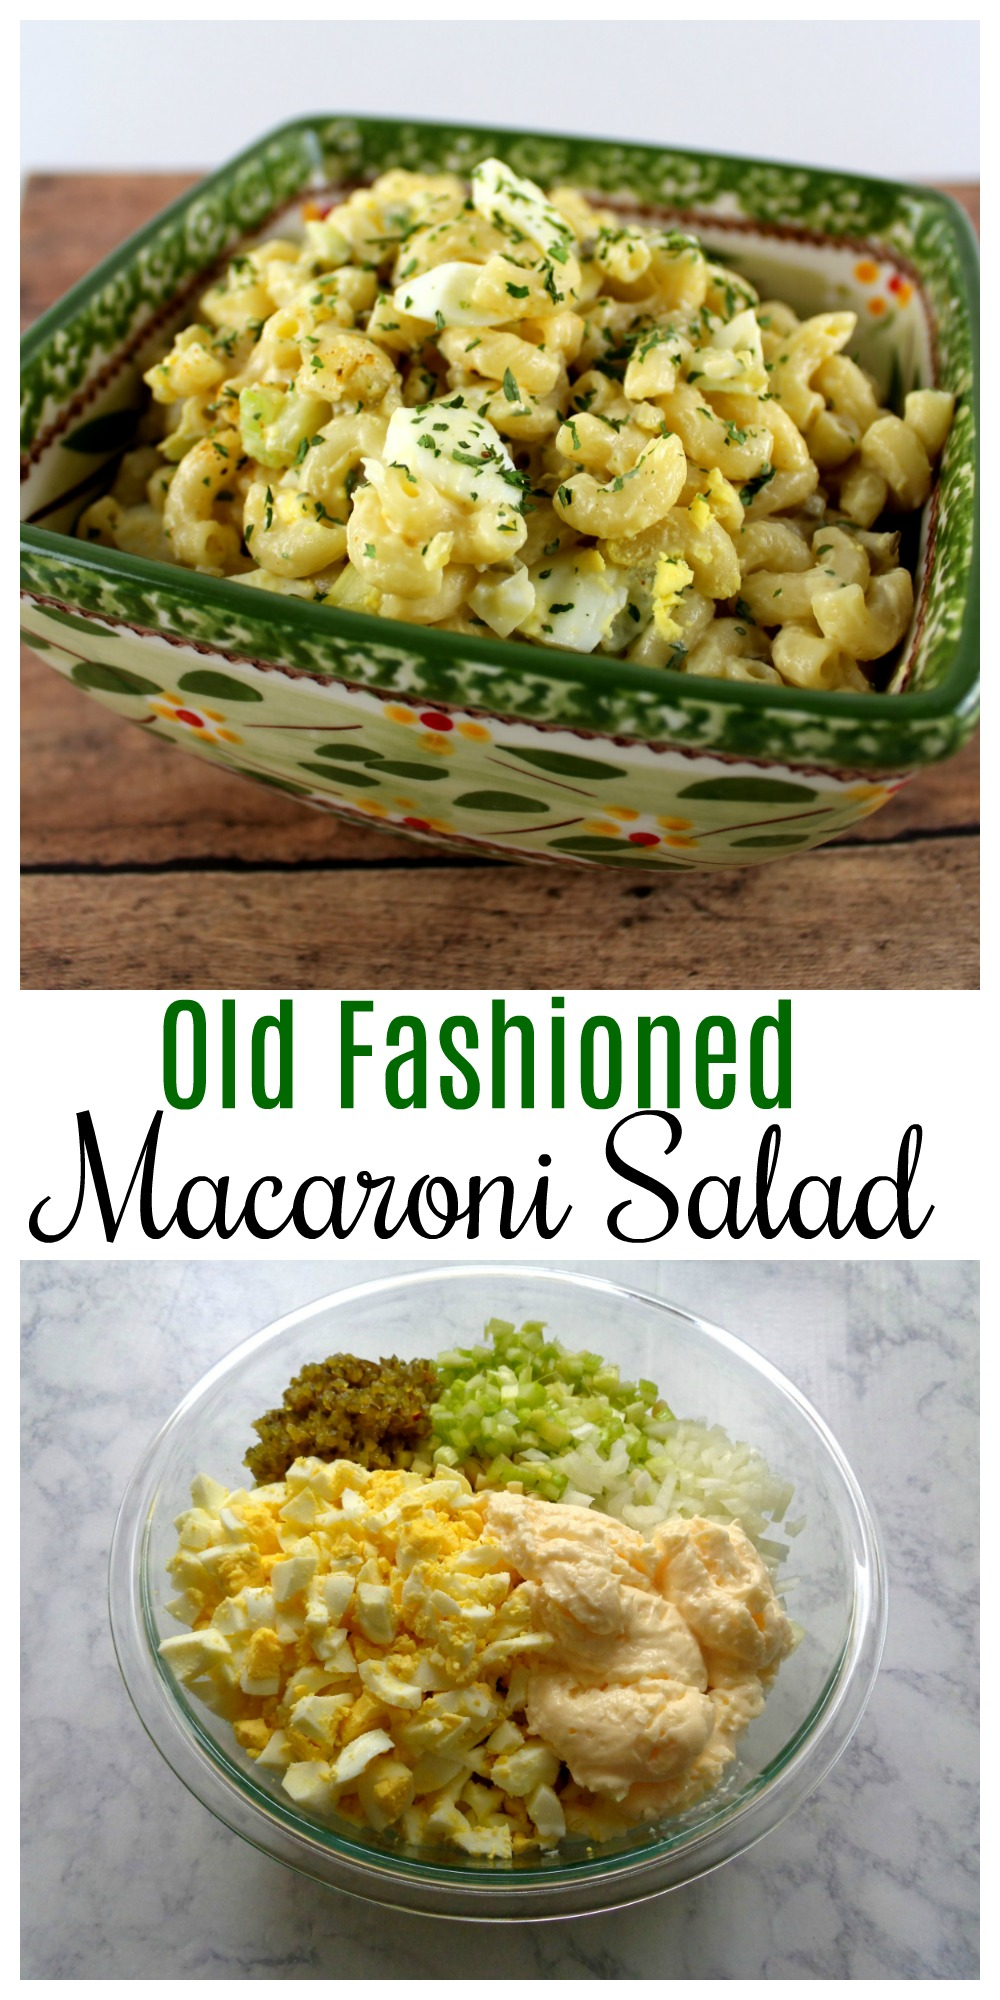 Try this Old Fashioned Macaroni Salad this summer. It's easy to make and it is a perfect side dish to bring to cookouts and get-togethers.